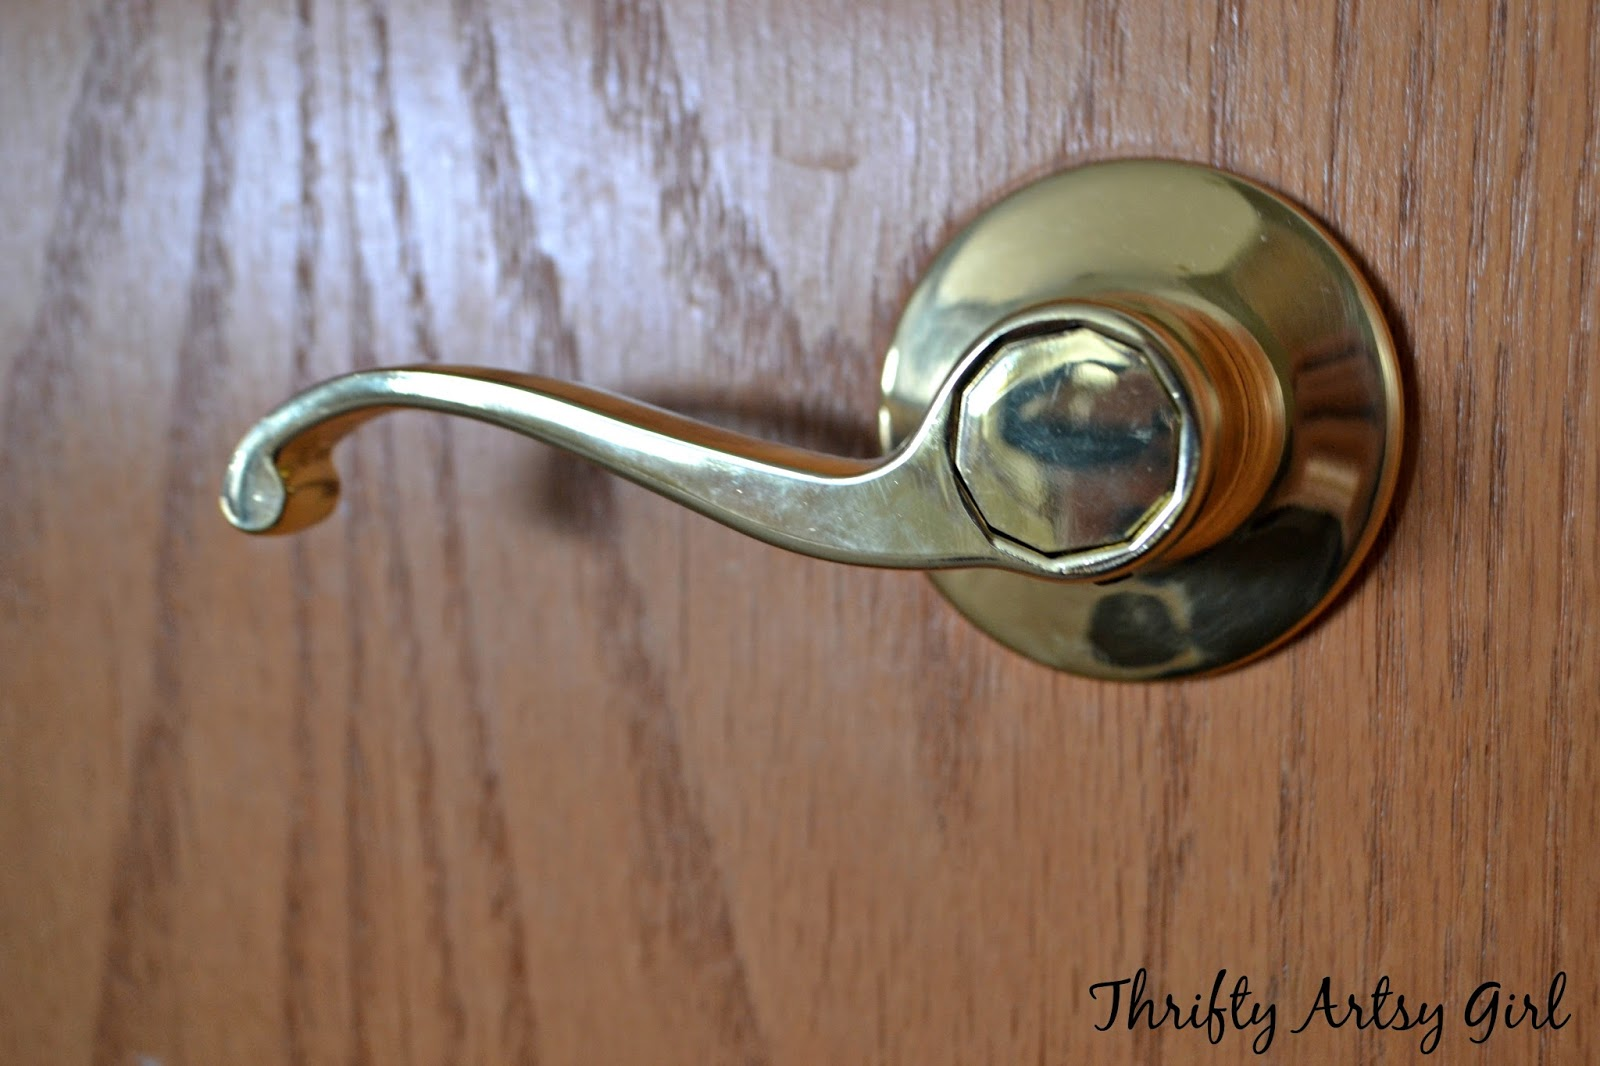 Thrifty Artsy Girl: DIY Spray Painted Doorknobs: From Cheap Brass to ...